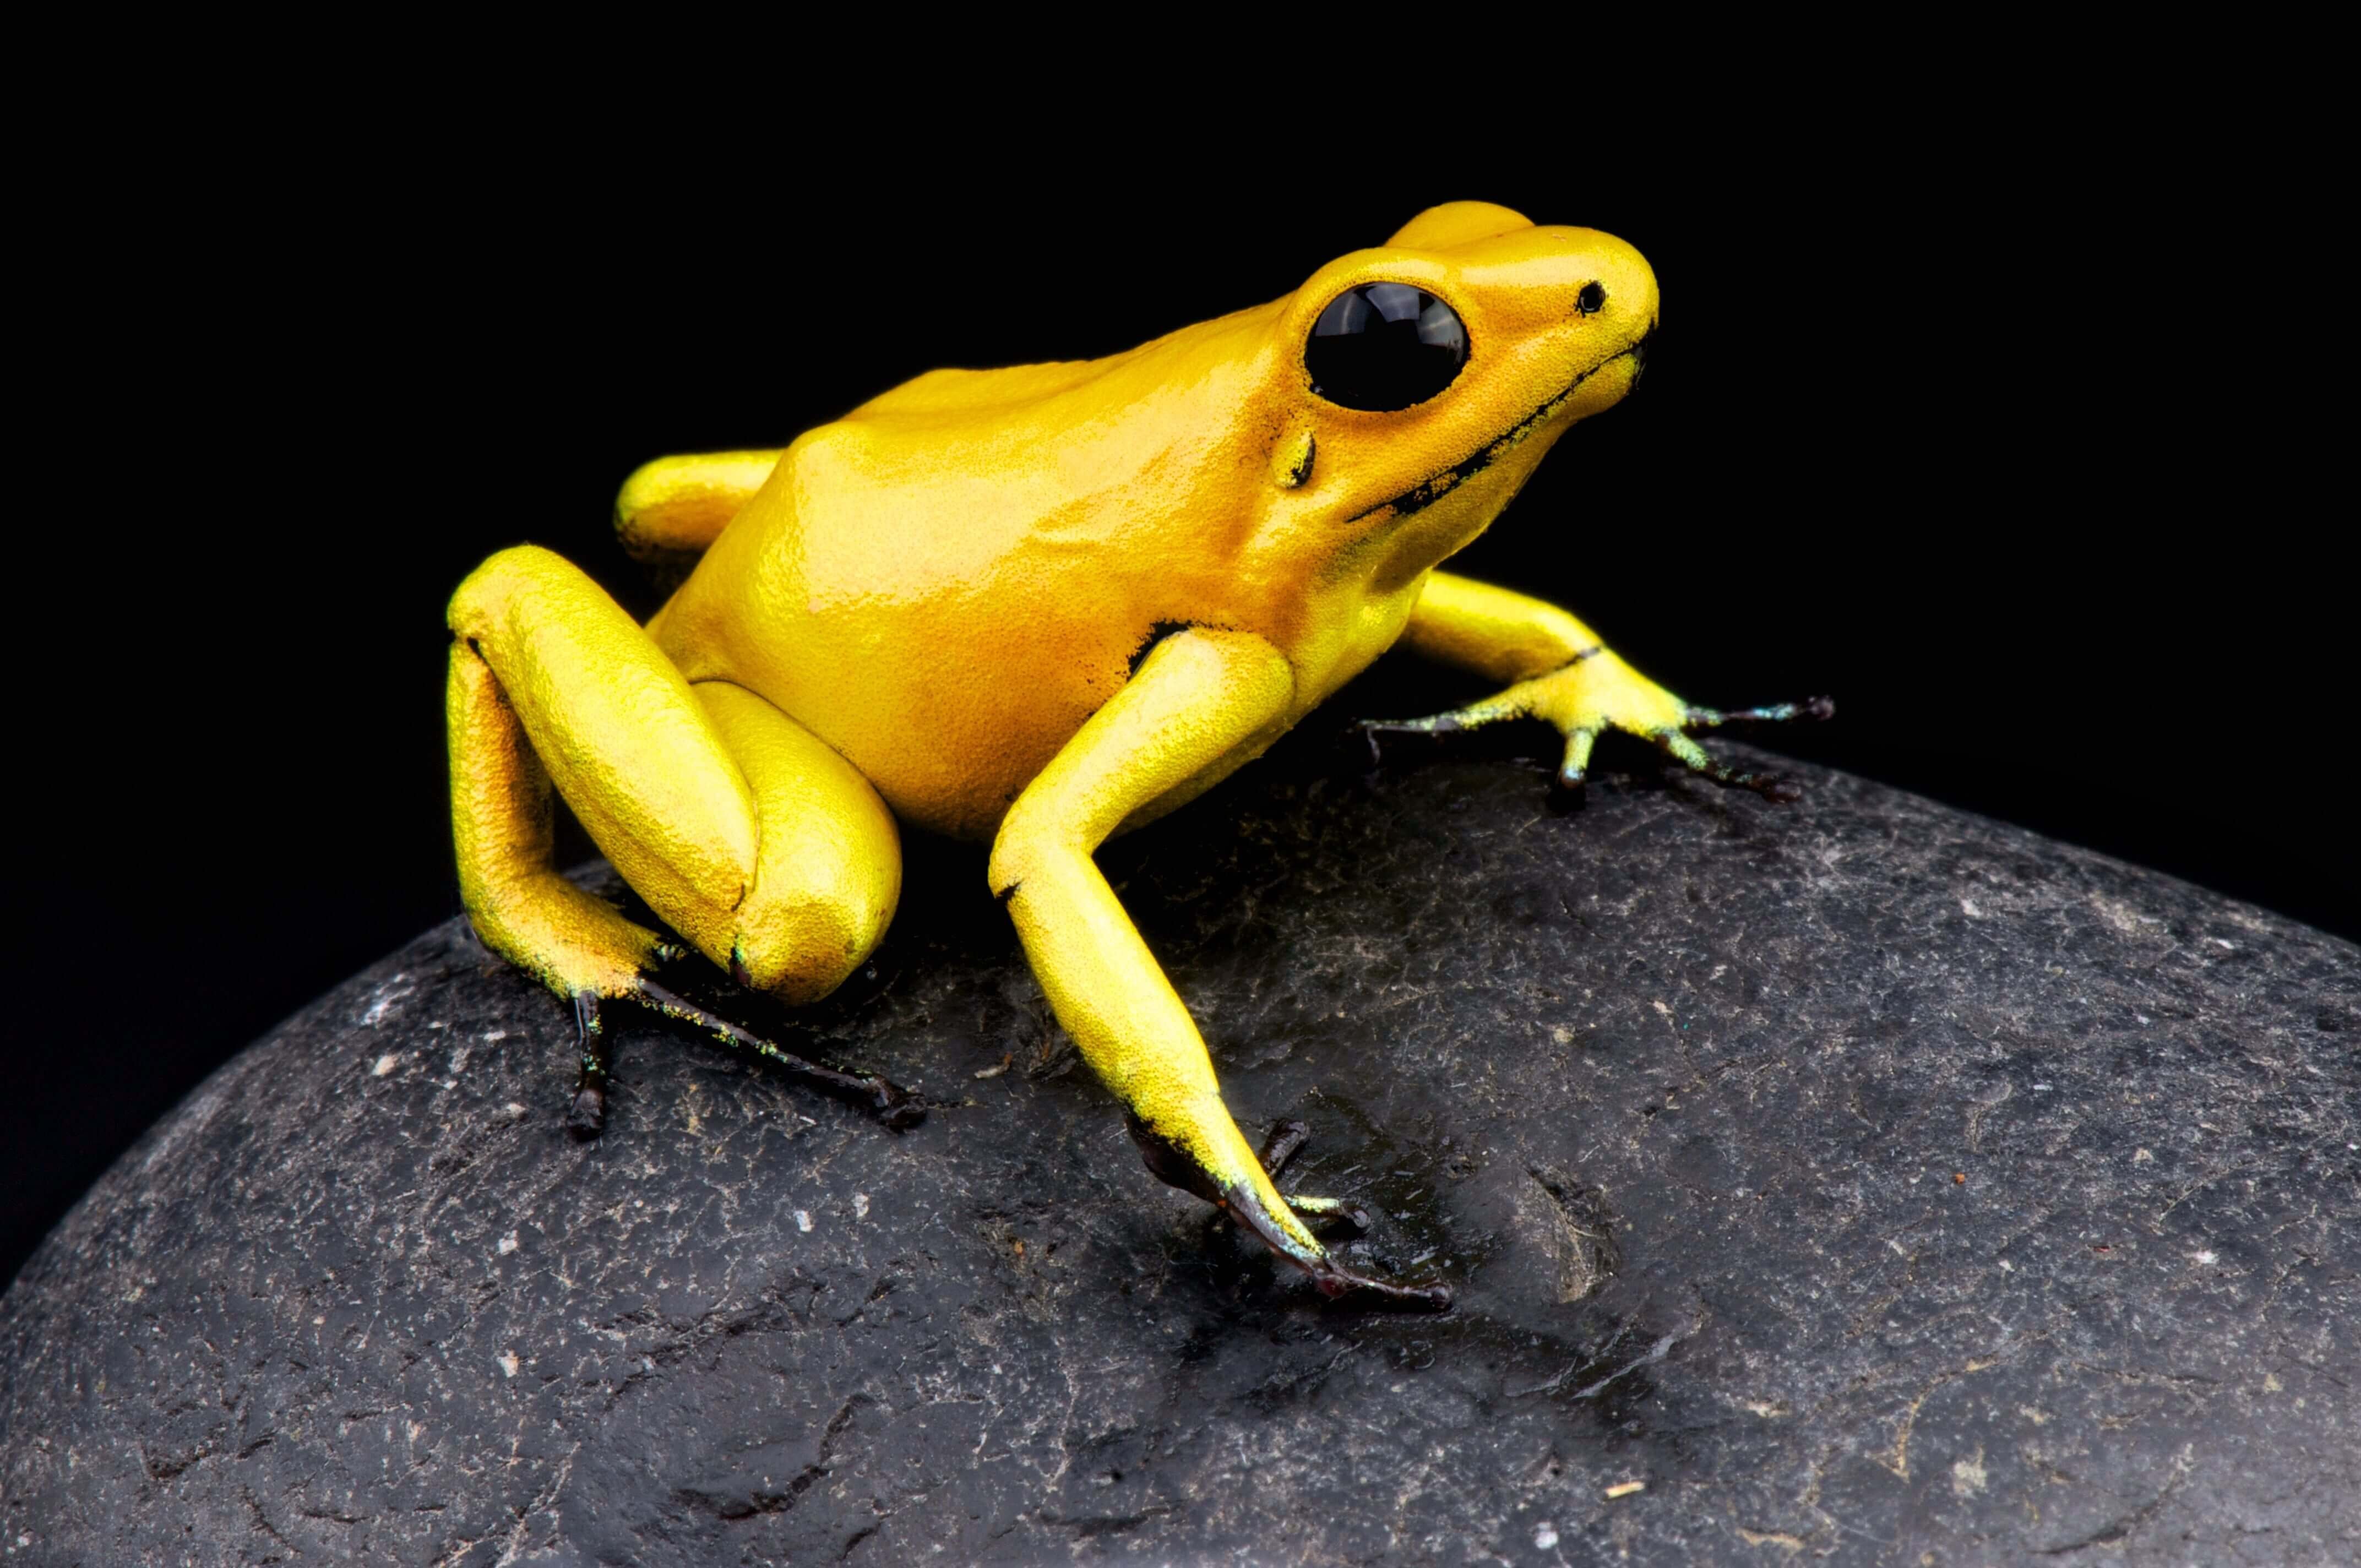 Golden Poison Frog, Phyllobates terribilis, Matthijs Kuijpers, cold instinct, poisonous frog, most poisonous animal, dangerous animals